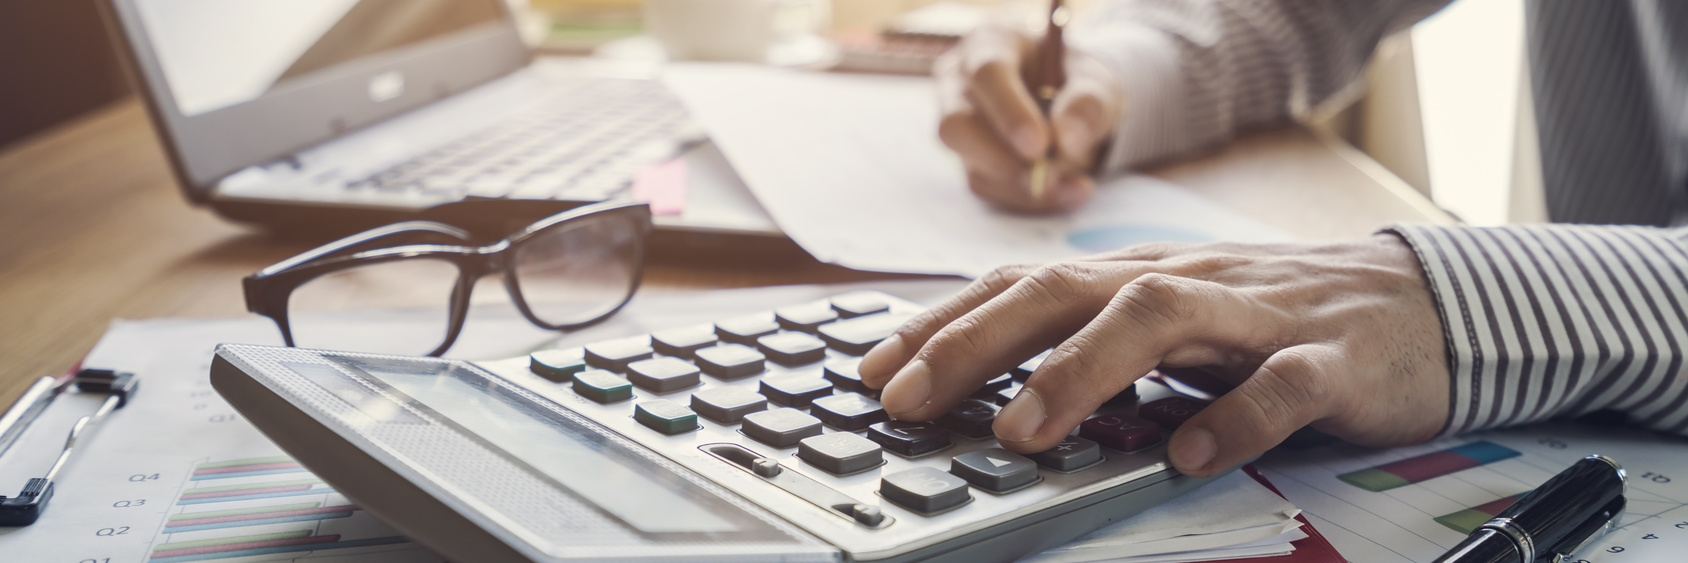 Foto: Businessman working on Desk office business financial accounting calculate © Kittiphan | Fotolia.com